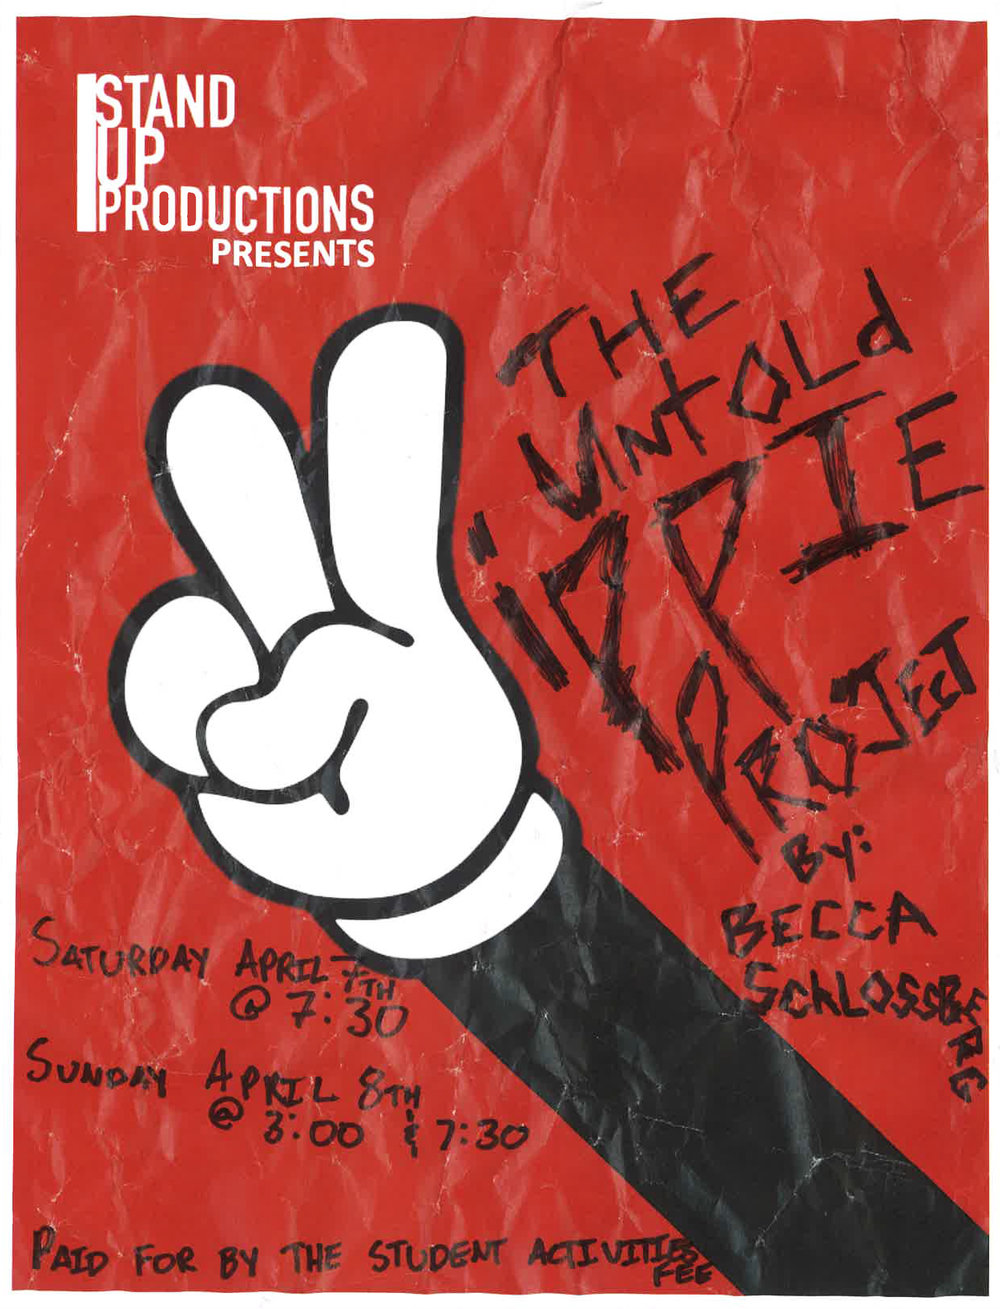 """Poster for """"The Untold Yippie Project"""" by Becca Schlossberg. Design by Melissa Ingle."""